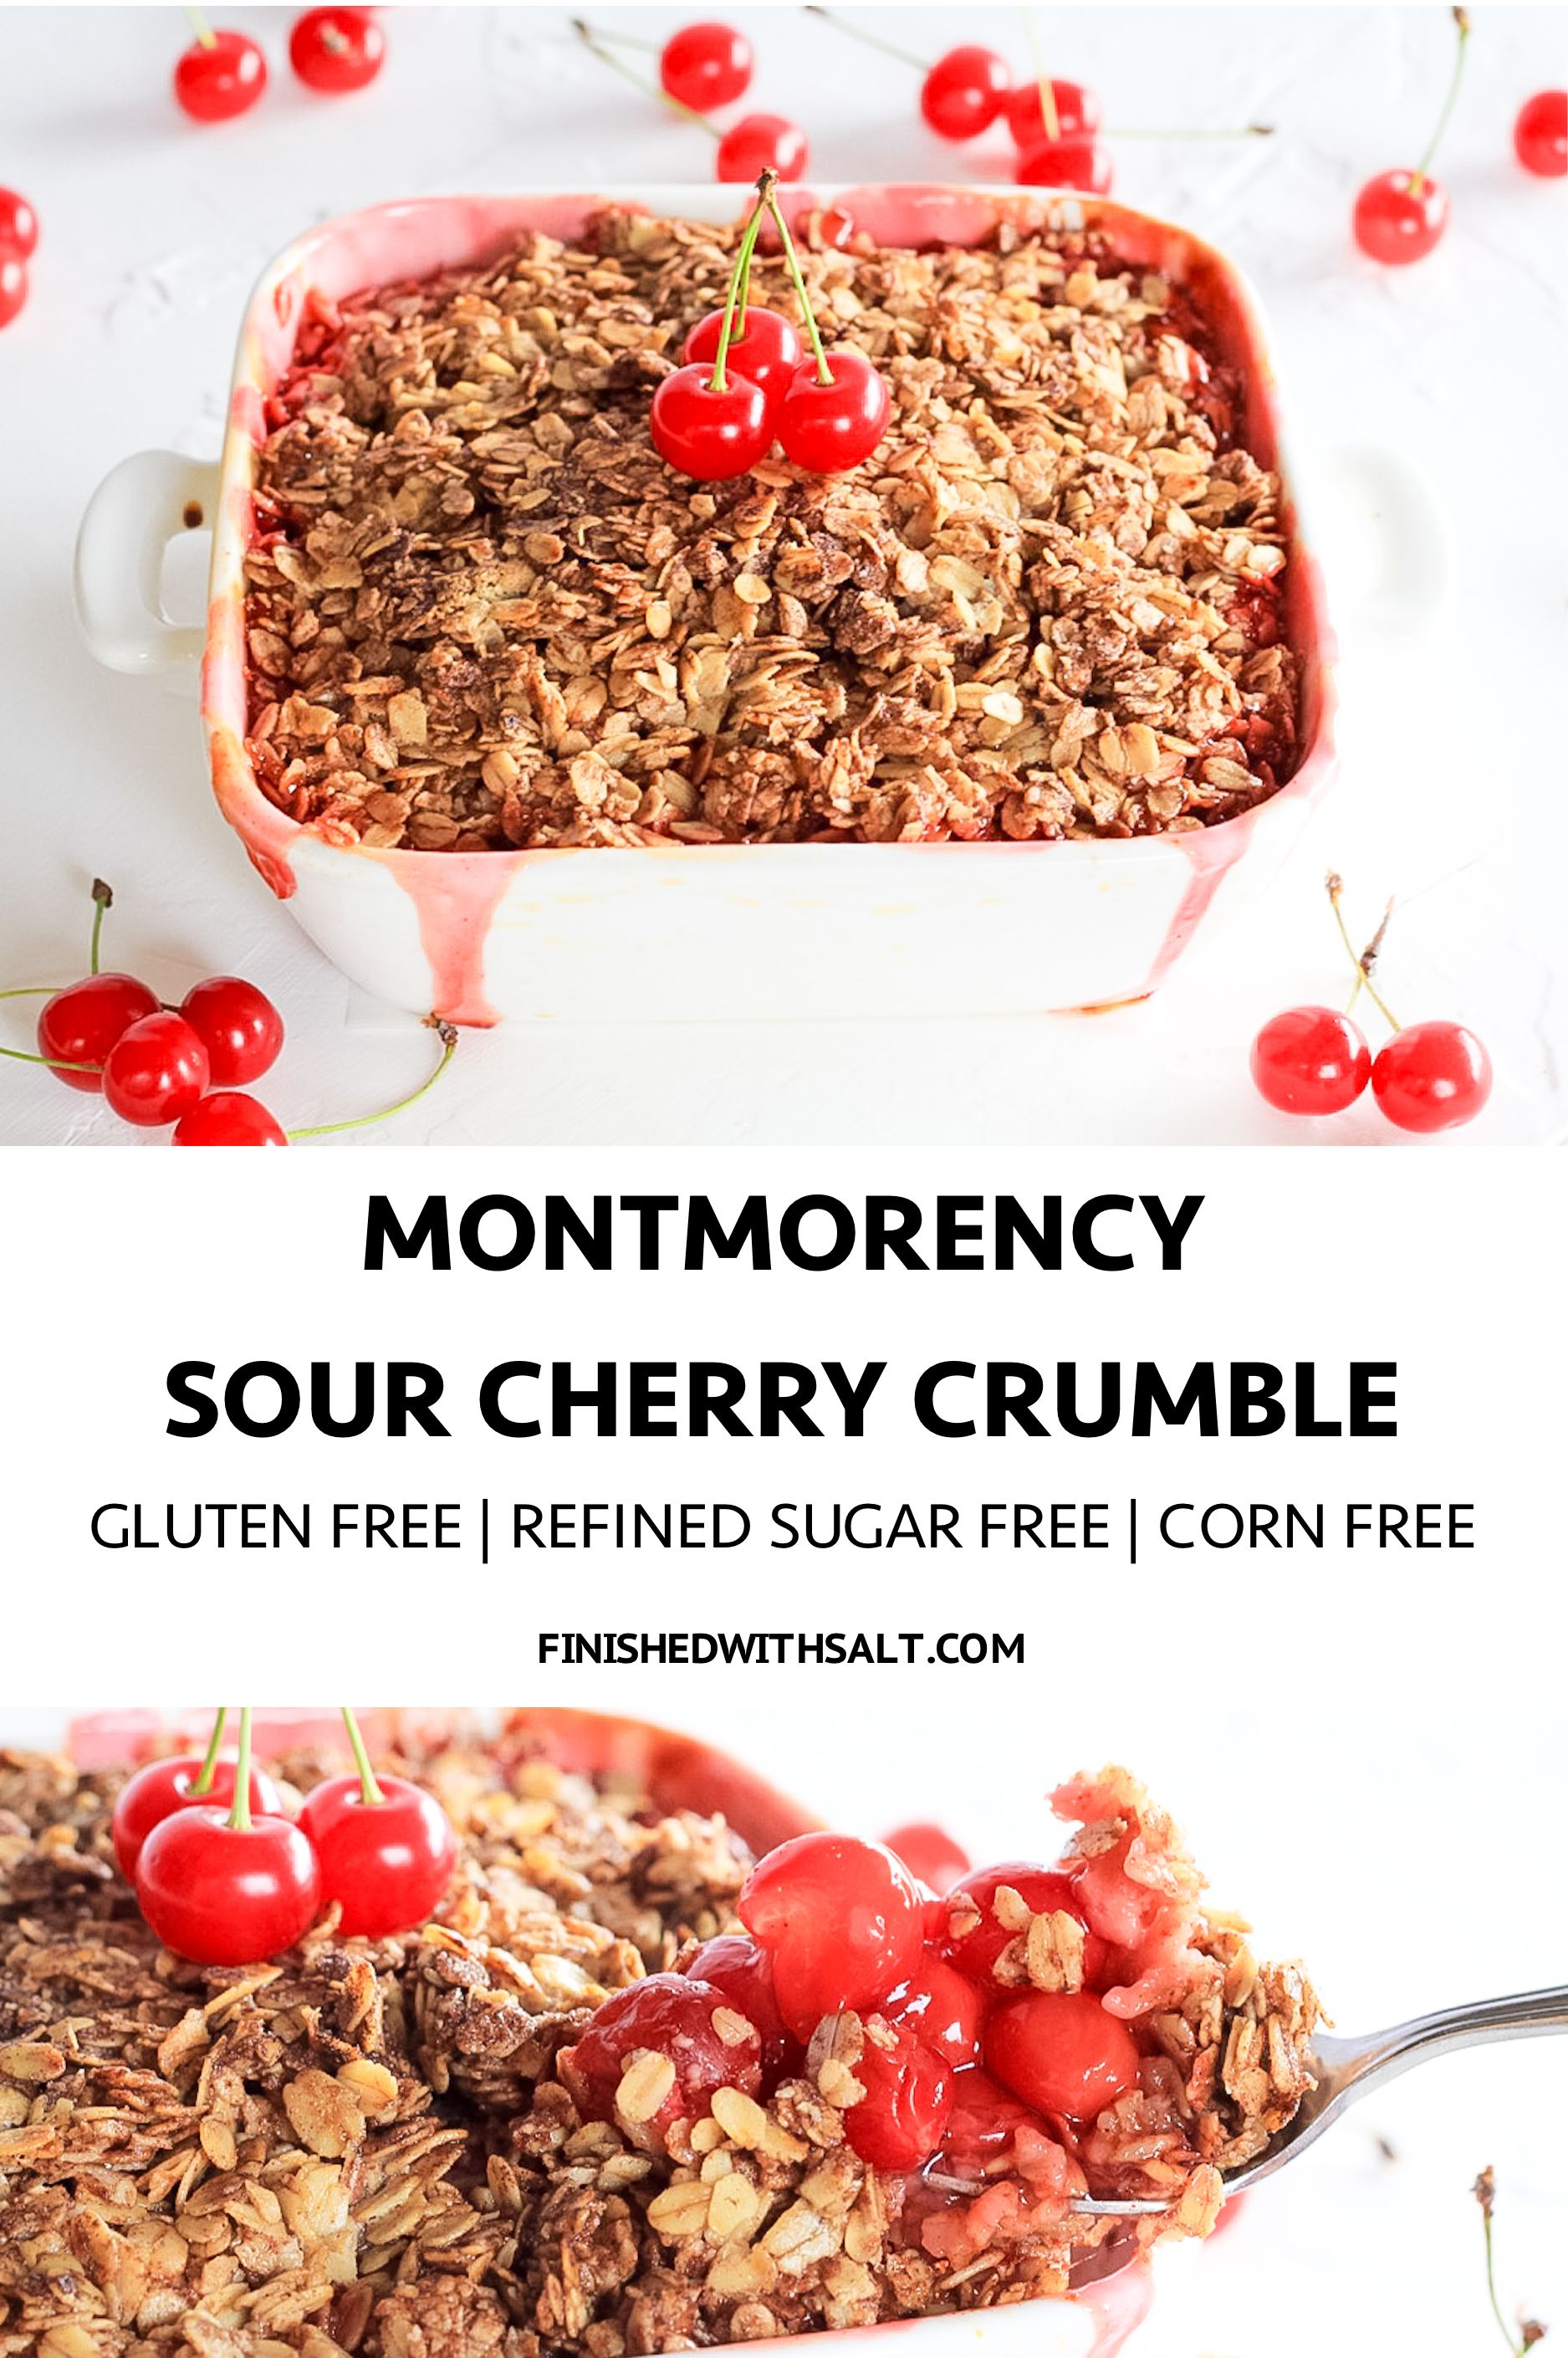 Montmorency Sour Cherry Crumble Tart and juicy Montmorency cherries make the best Sour Cherry Crumble! |